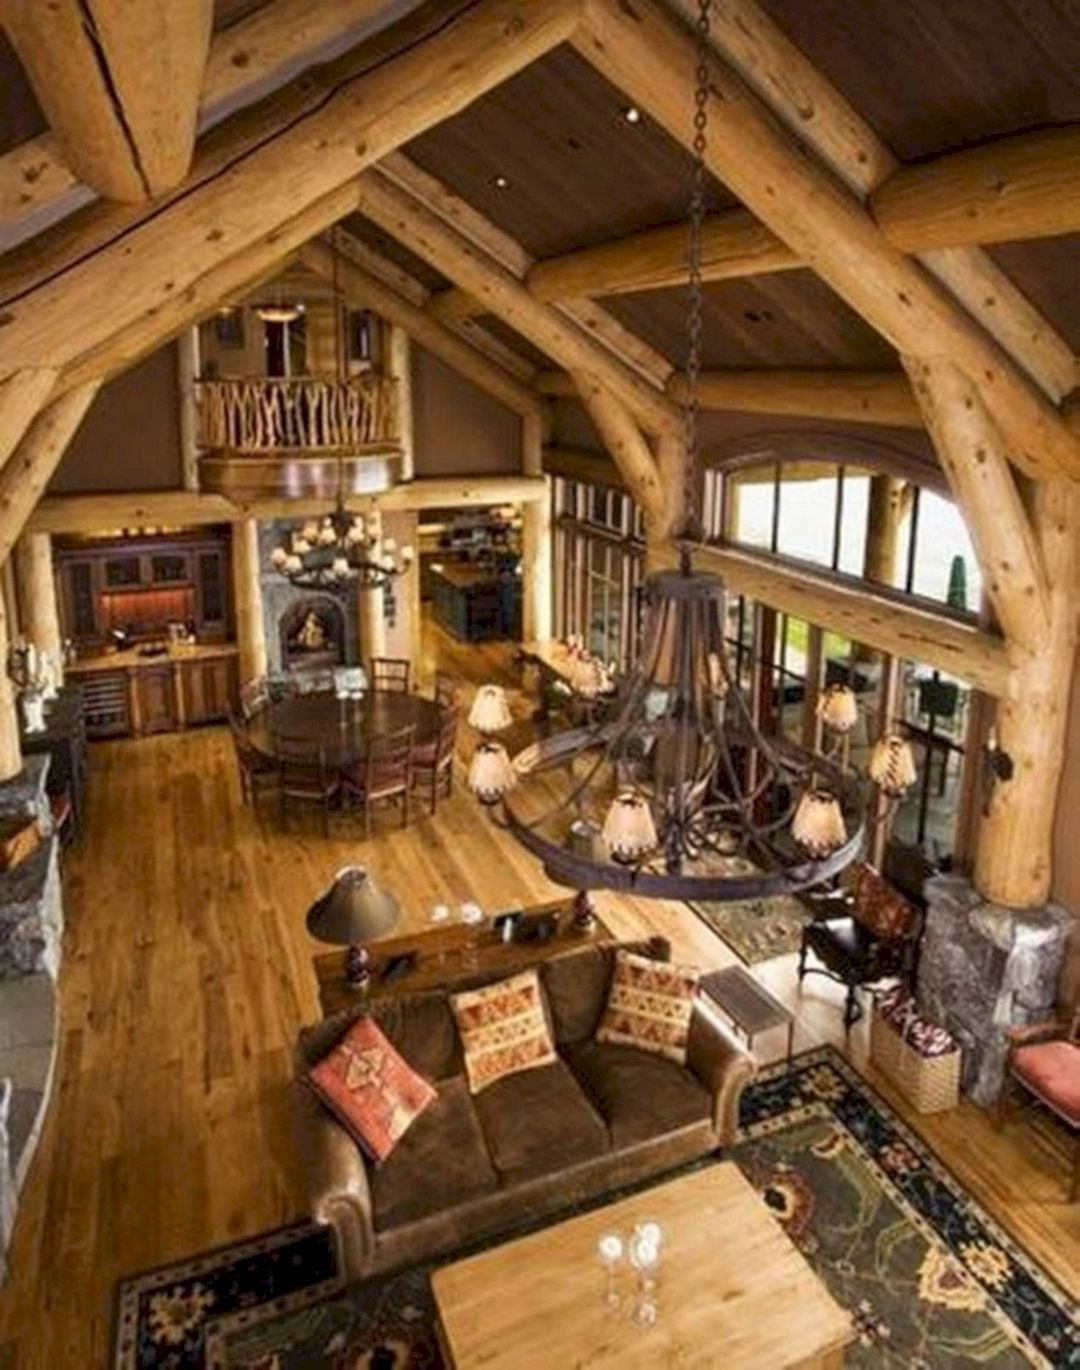 30 Rustic Cabin Style Decorating Ideas You Need To Have With